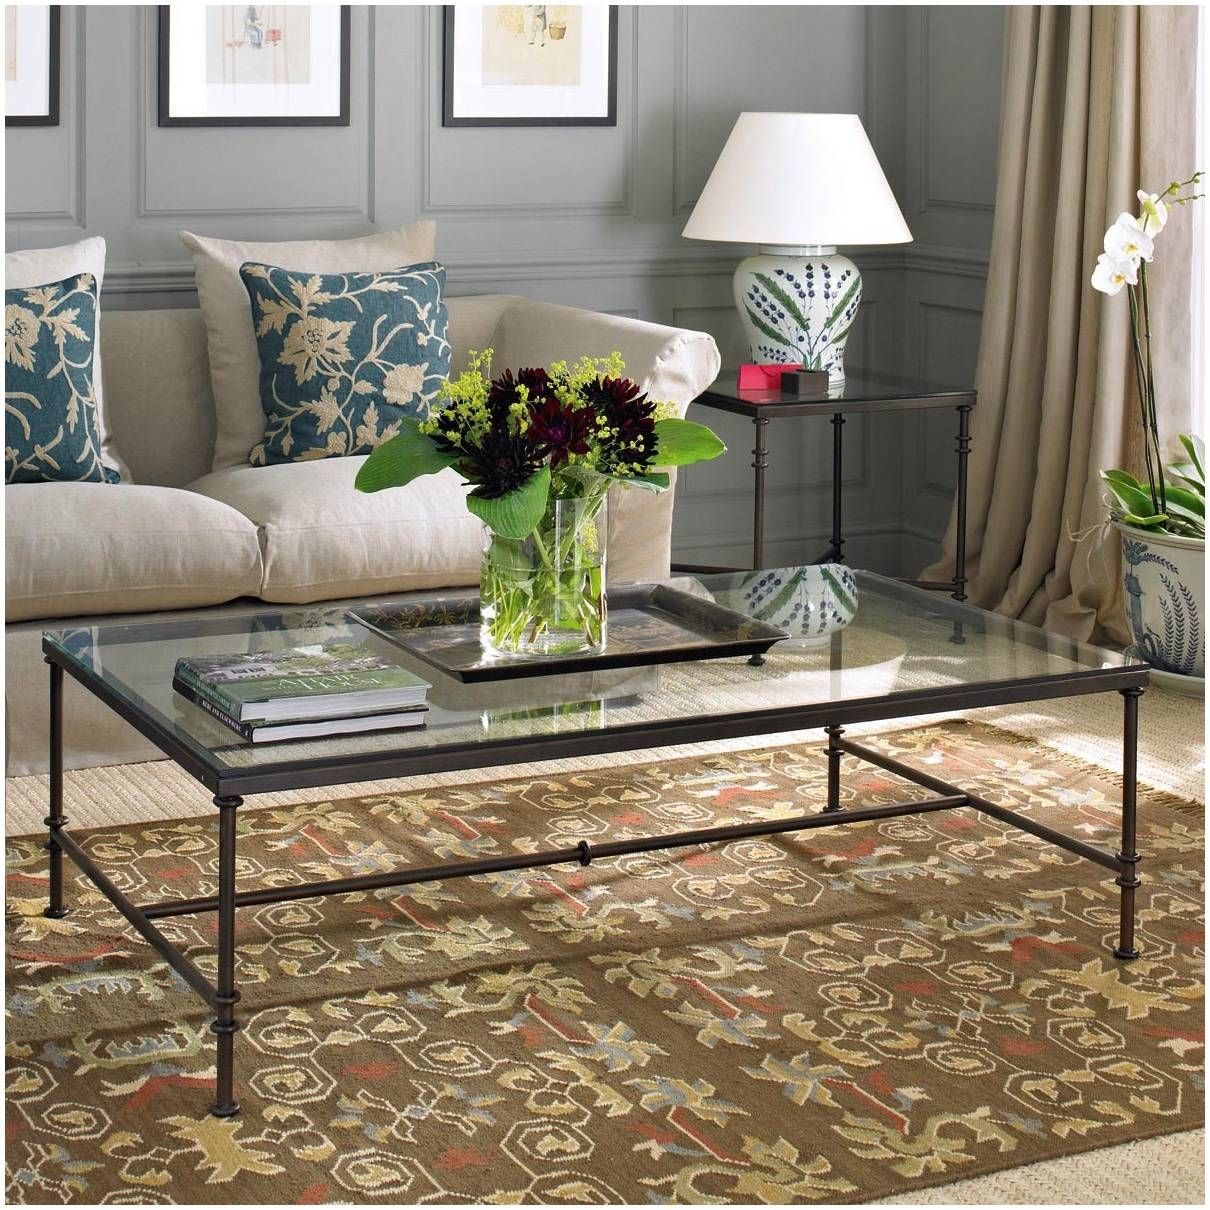 Coffee Table Metal Frame Glass – Cocinacentral.co for Coffee Tables Metal And Glass (Image 2 of 30)